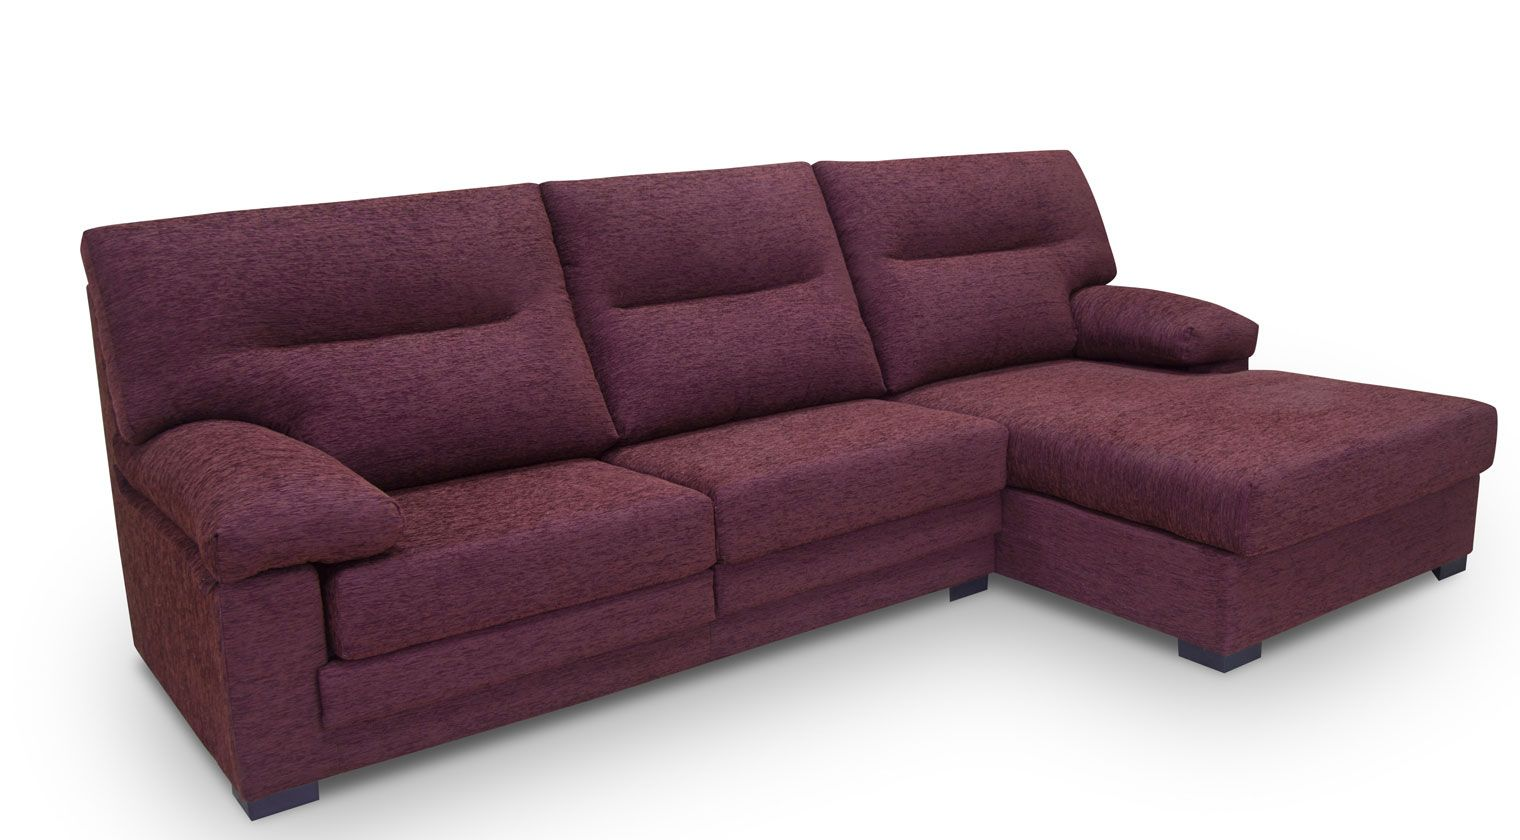 tumb-Chaise-Longue-tela-CERES-2